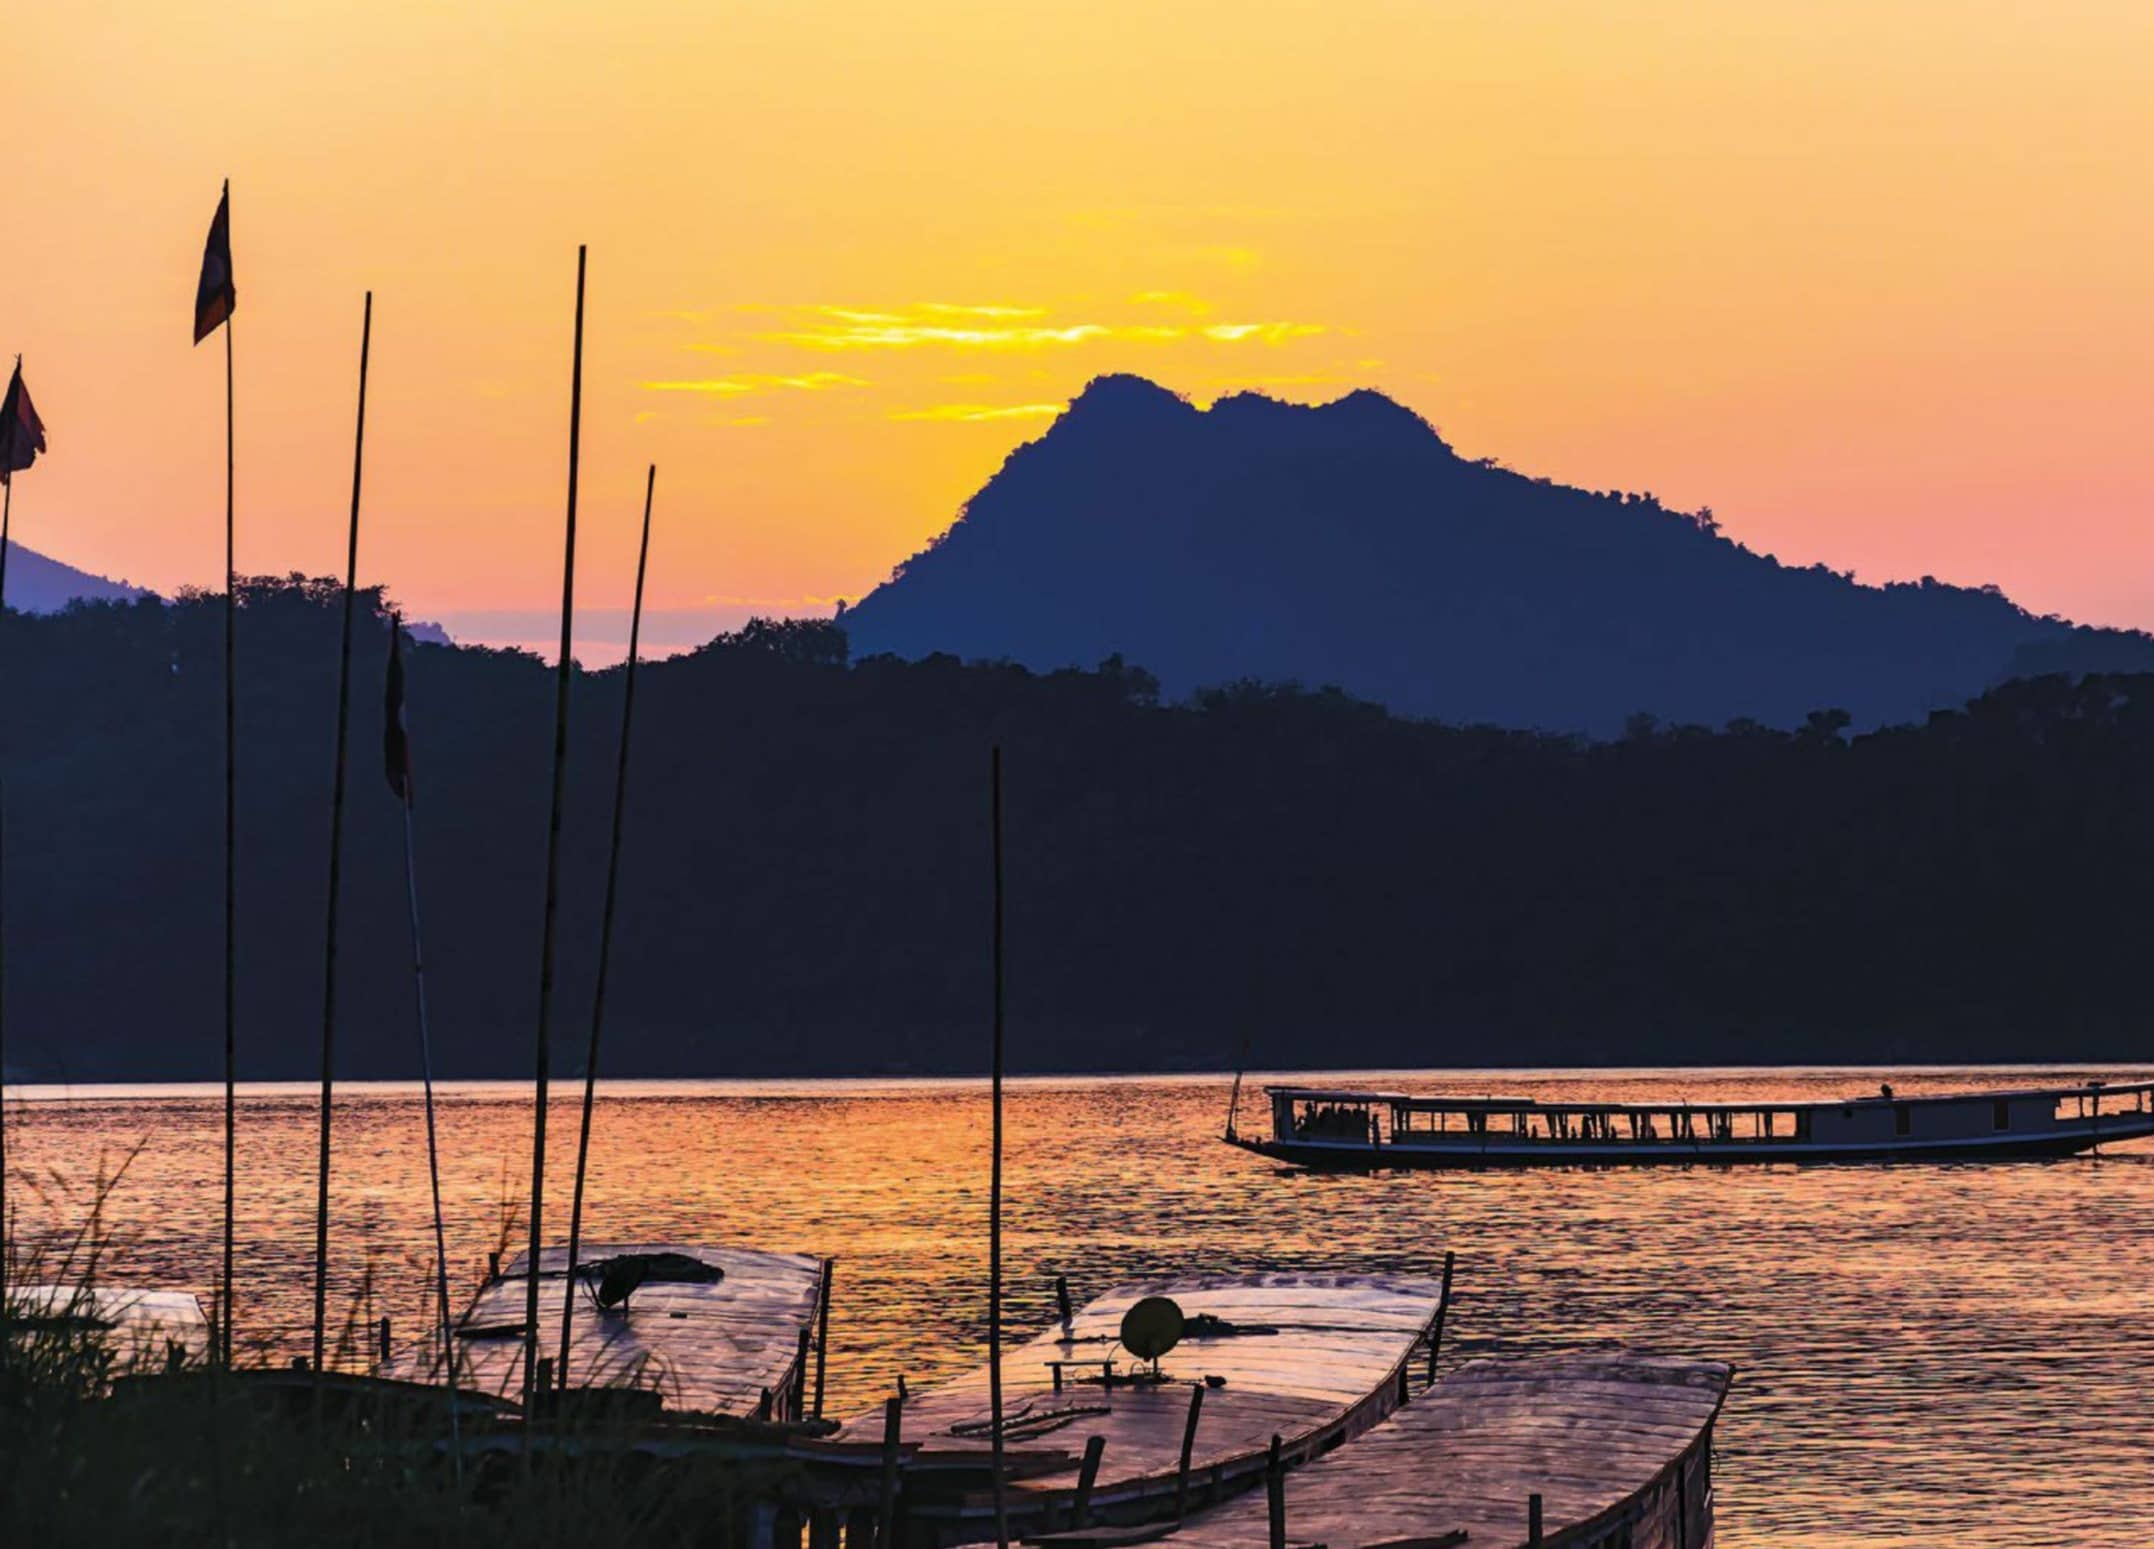 By The Mighty Mekong